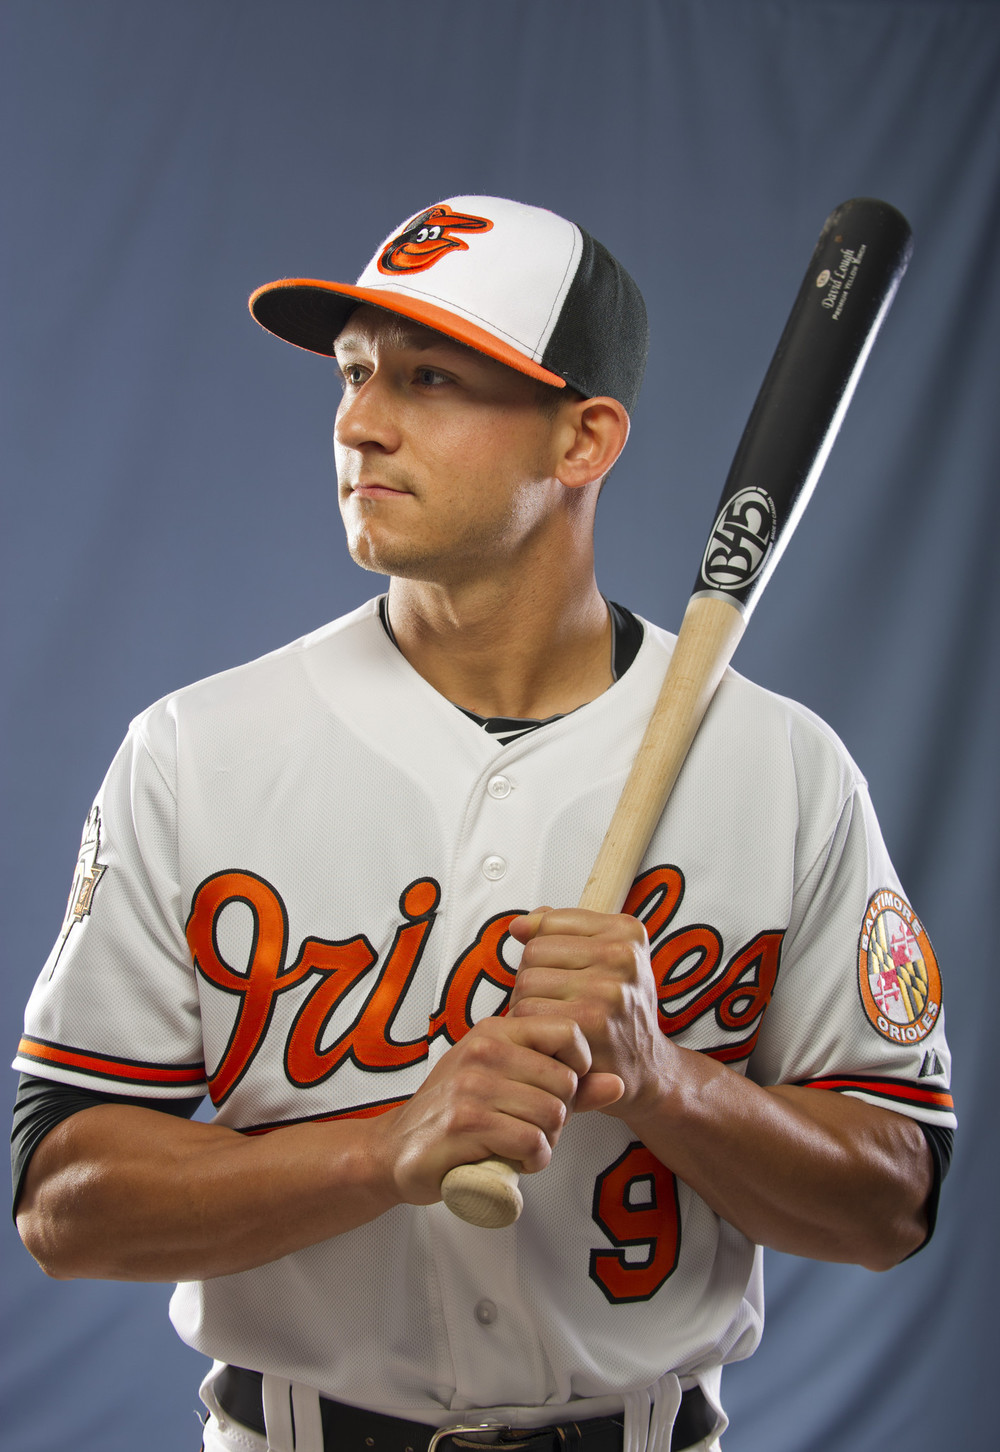 David Lough still has a place on the 2015 Orioles even after the acquisition of fellow lefty outfielder Travis Snider.